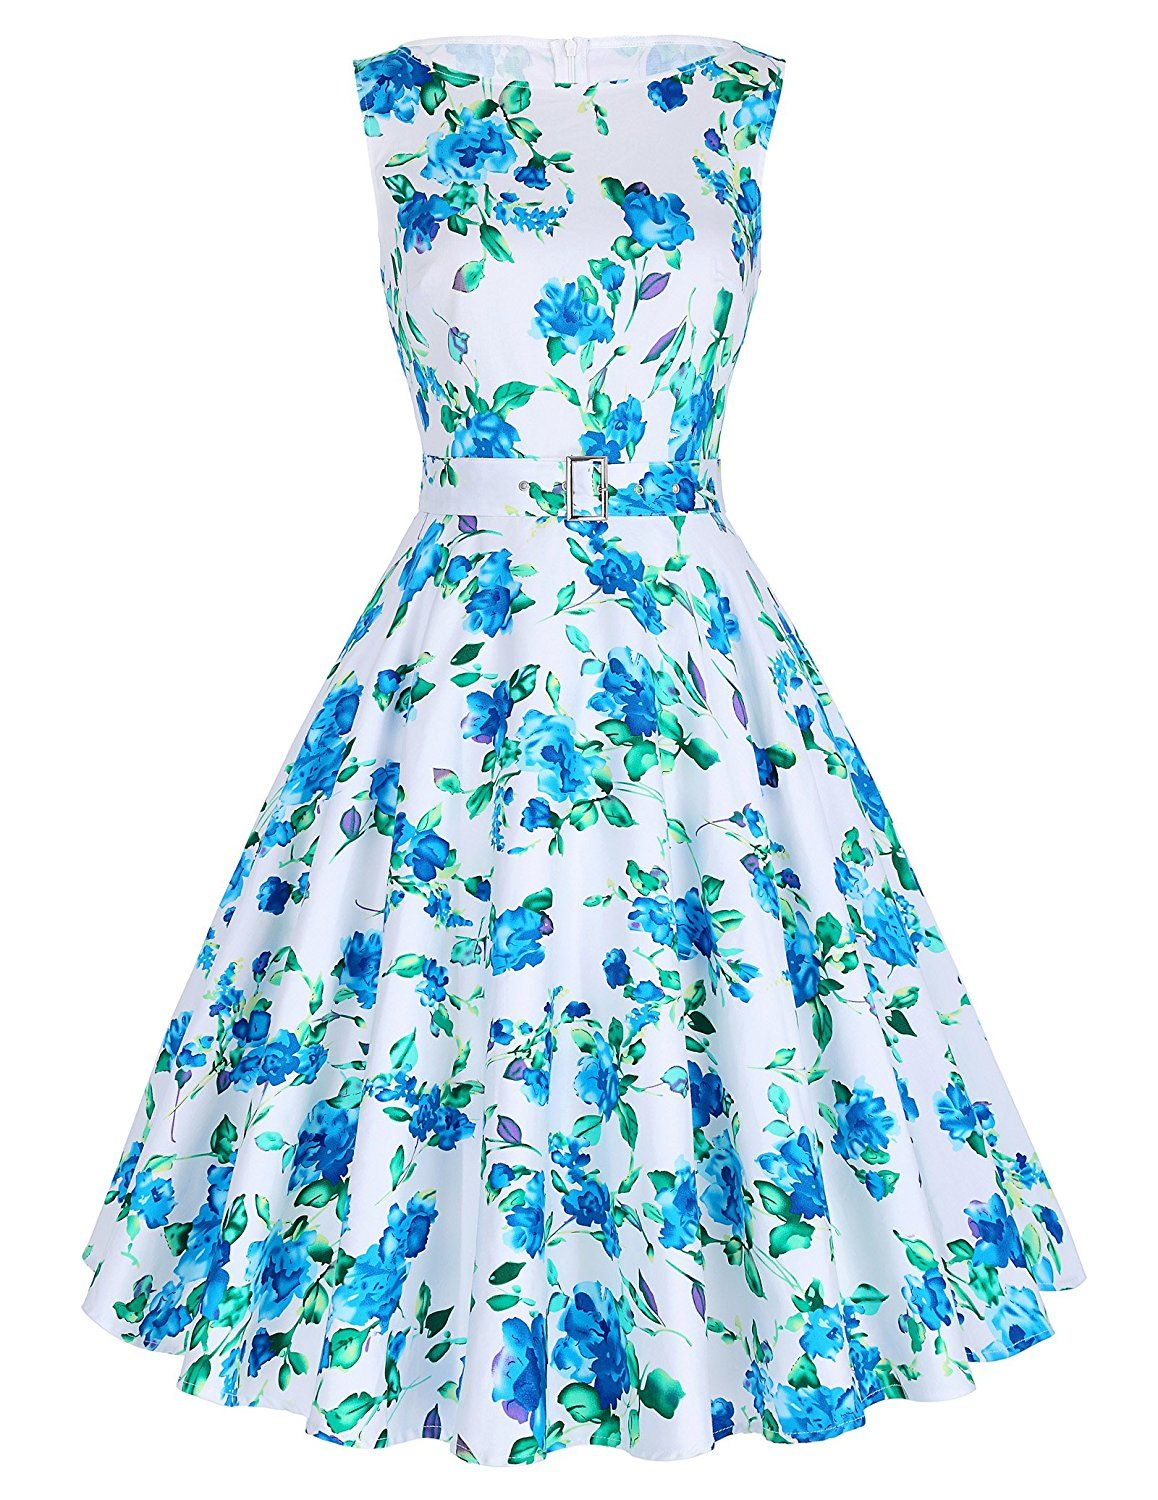 Belle Poque Belted 1950s Vintage Retro Swing Dress 2017 New ...